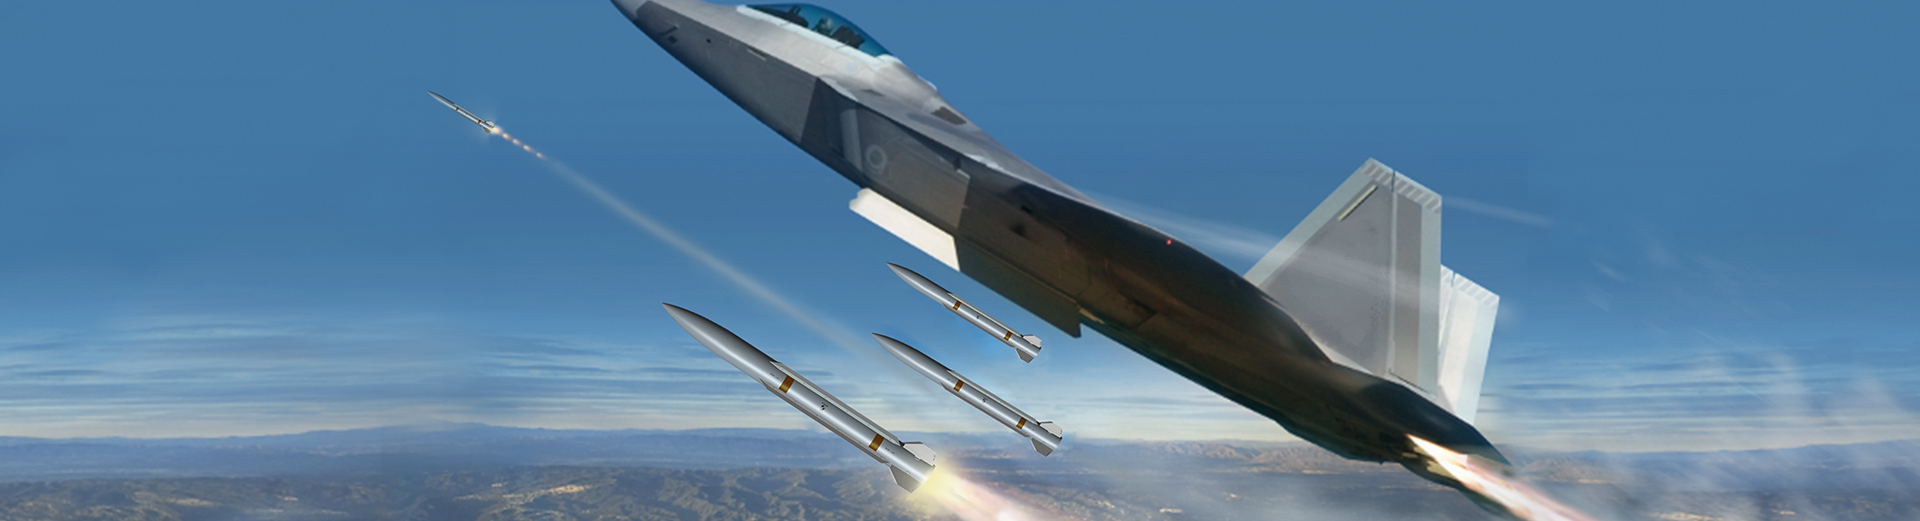 Raytheon shows smaller, longer-range air-to-air missile